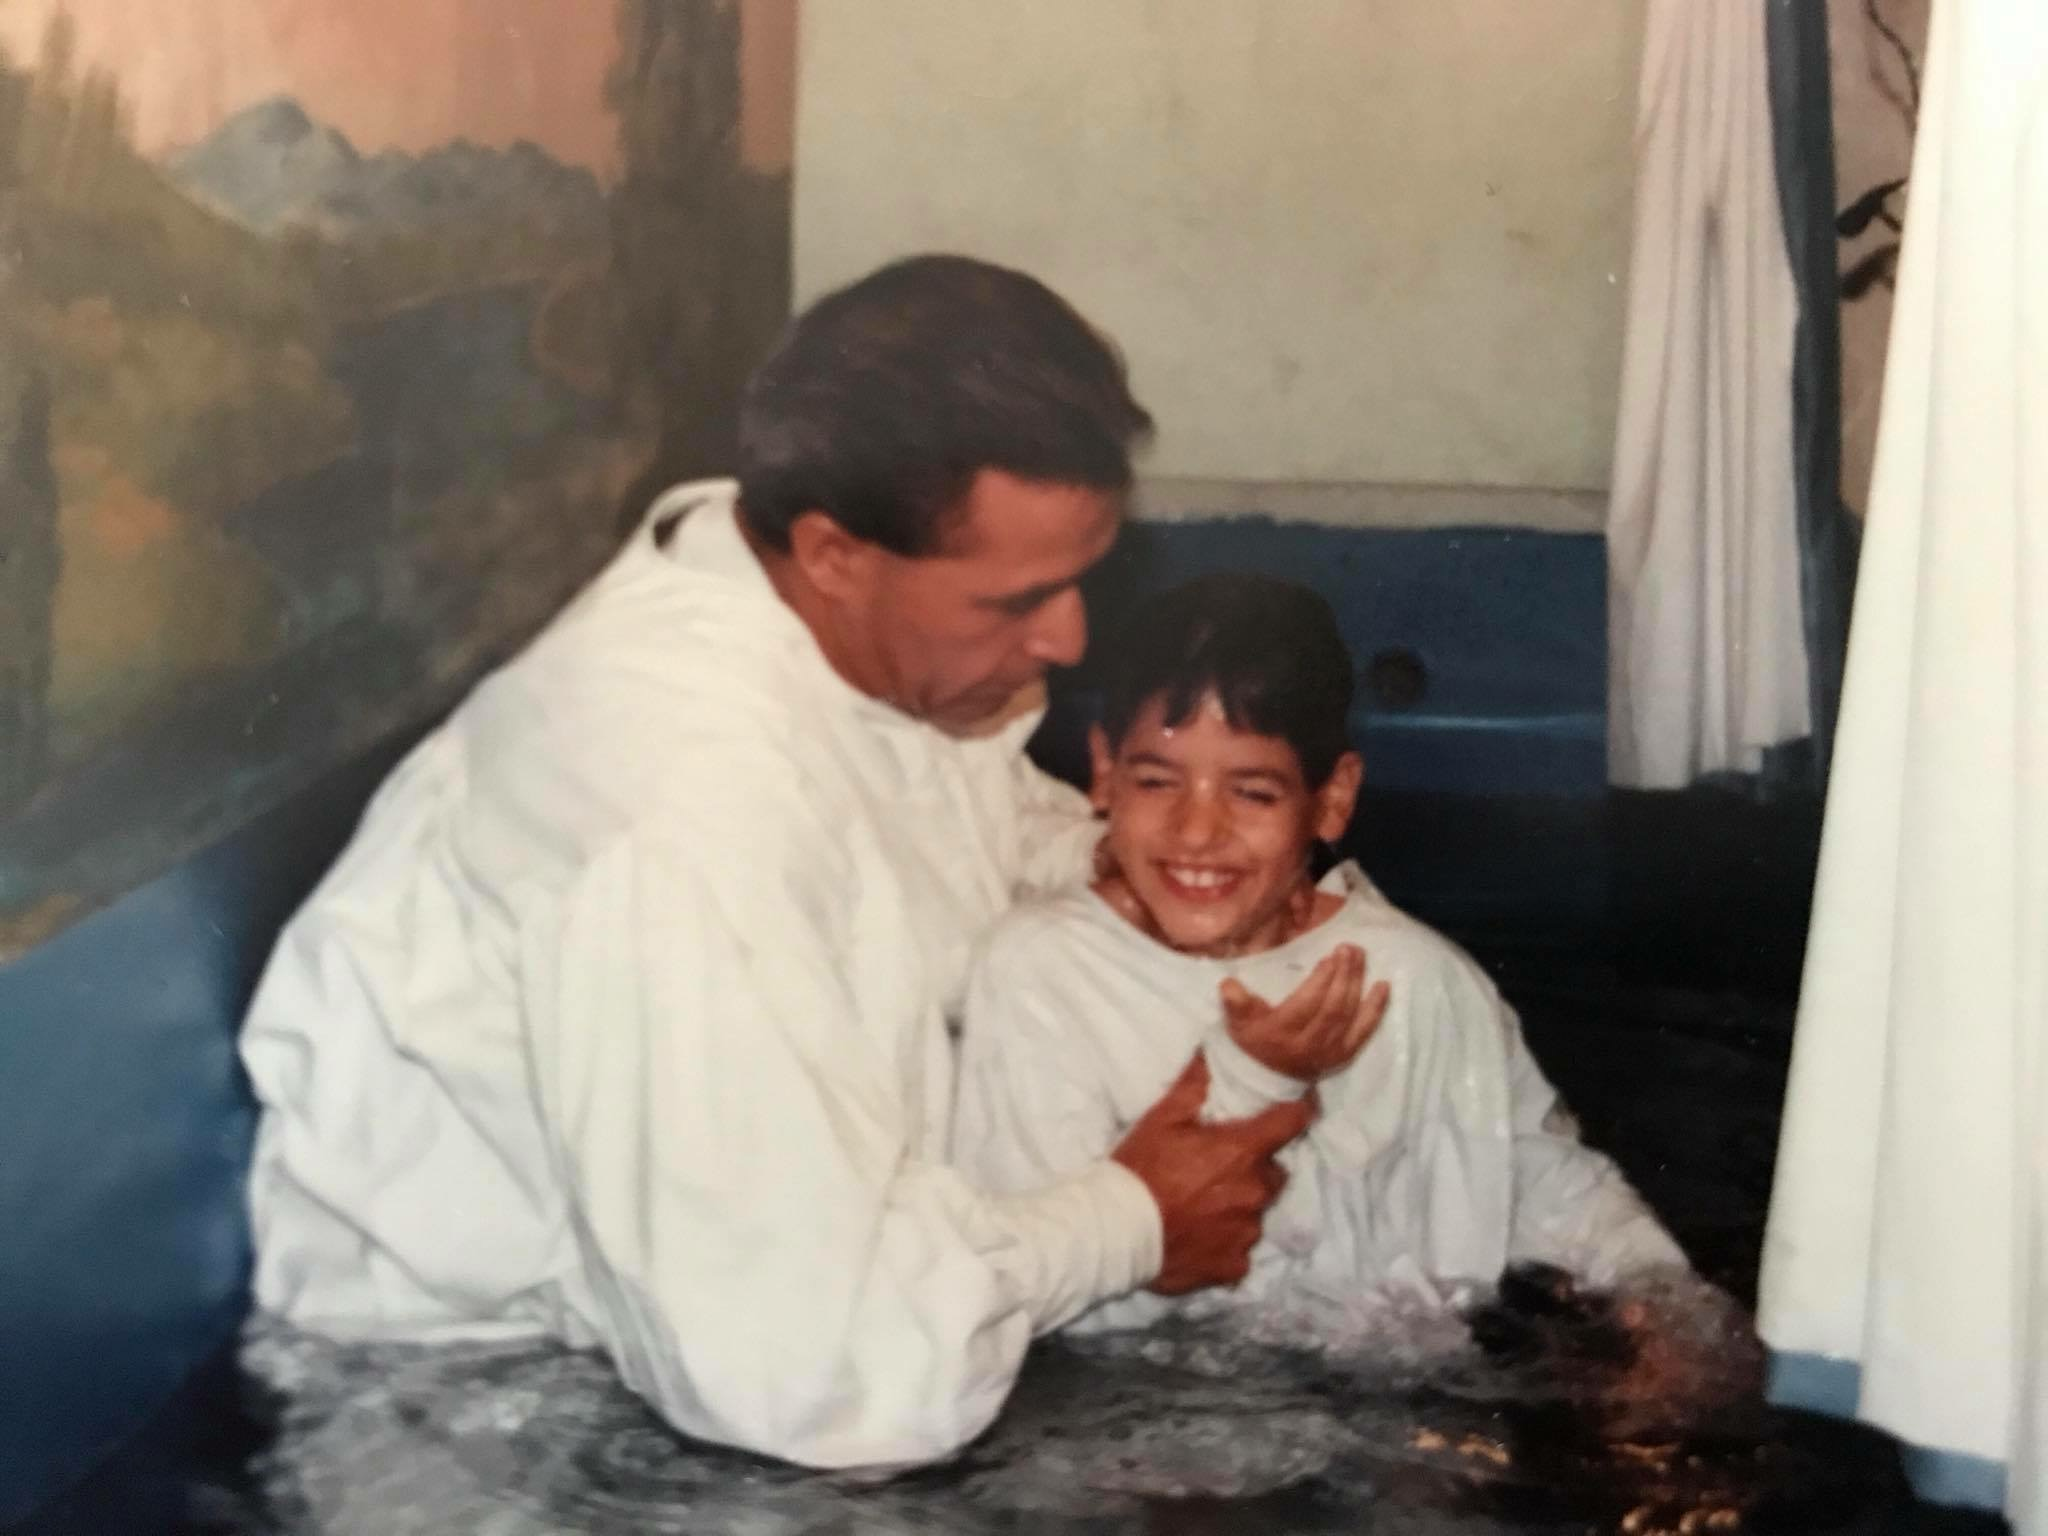 I was baptized into Christianity at the age of 7.